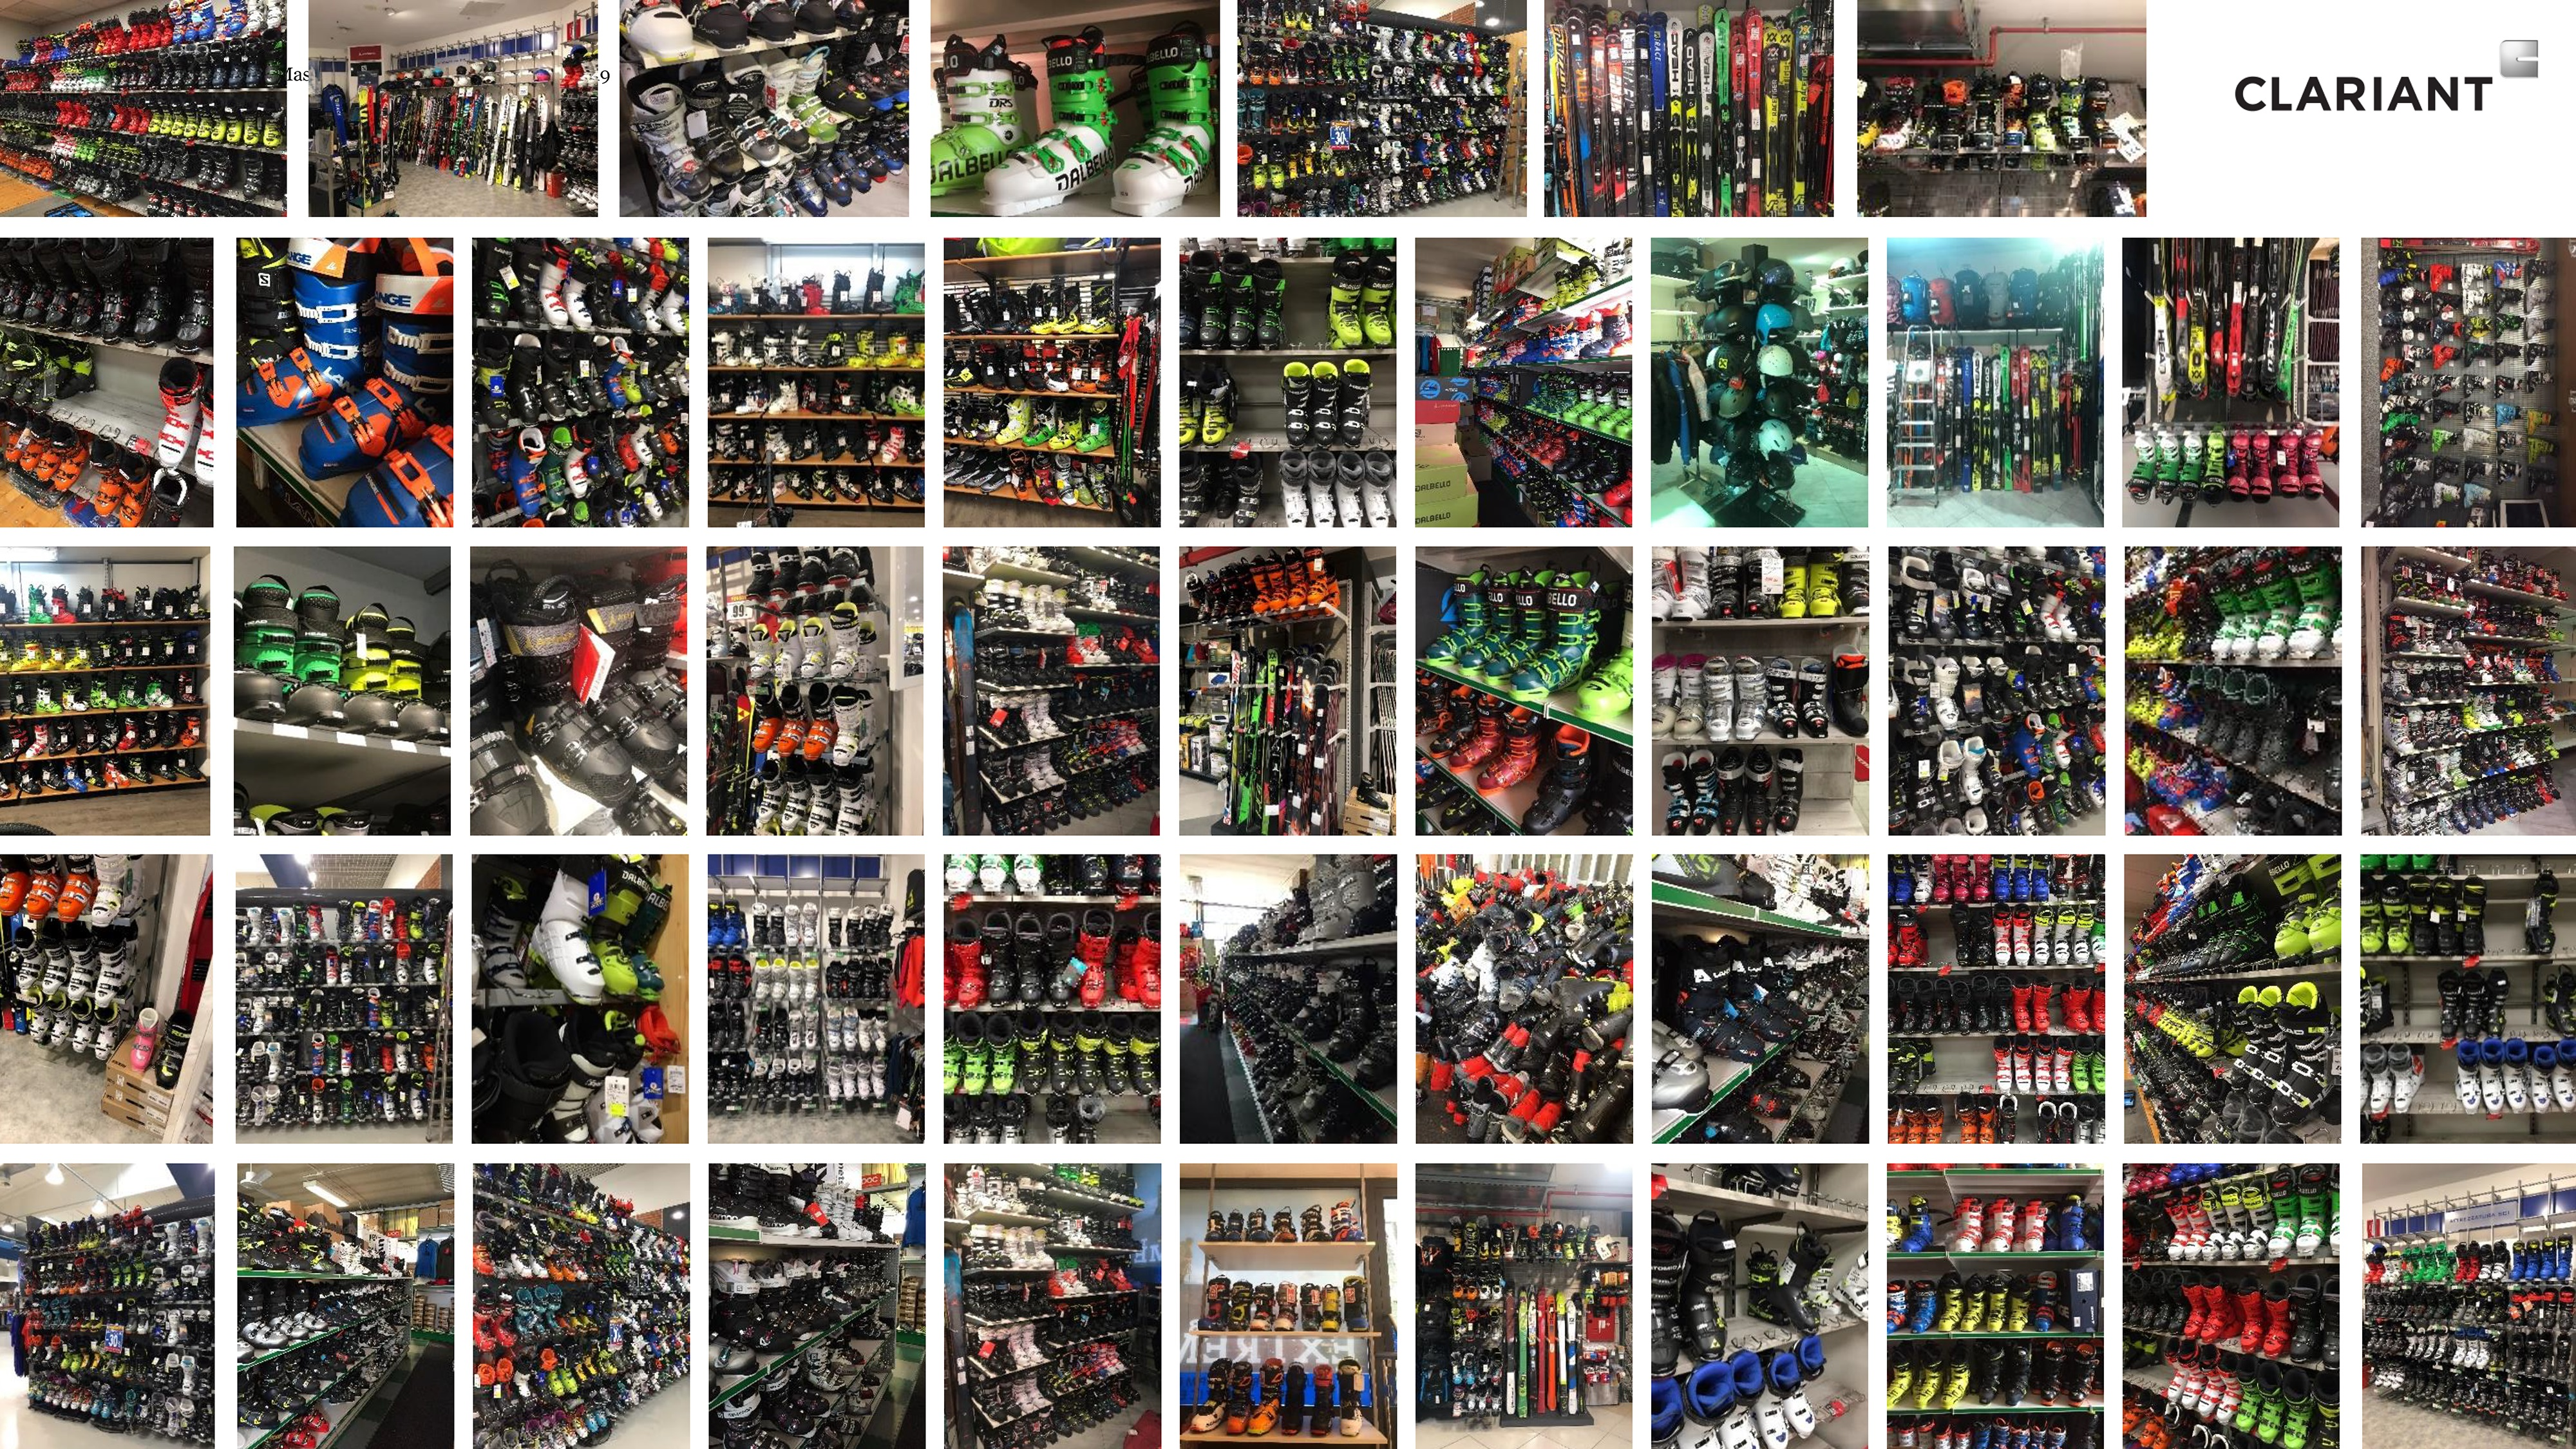 The partners visited the websites of eleven ski boot manufacturers, collecting a total of 499 images of individual boots presented in online catalogues. (Source: Clariant)